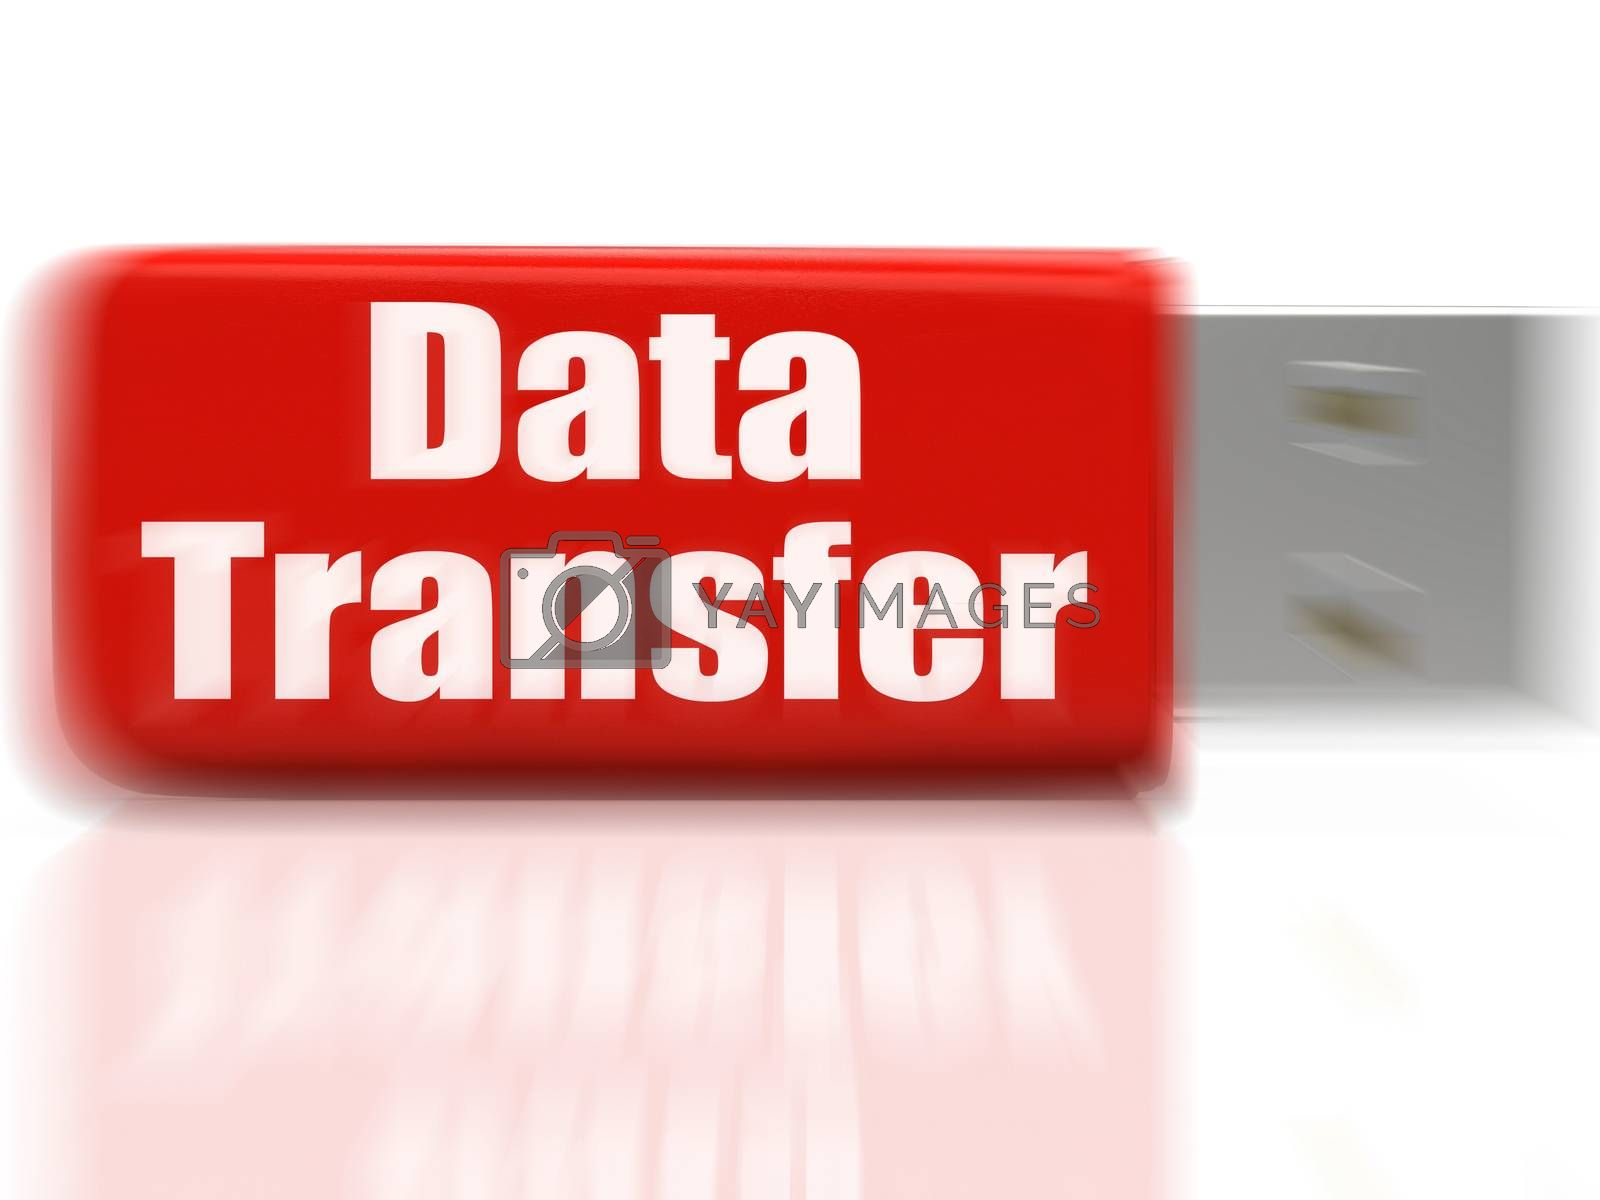 Data Transfer USB drive Shows Data Storage Or Files Transfer by stuartmiles